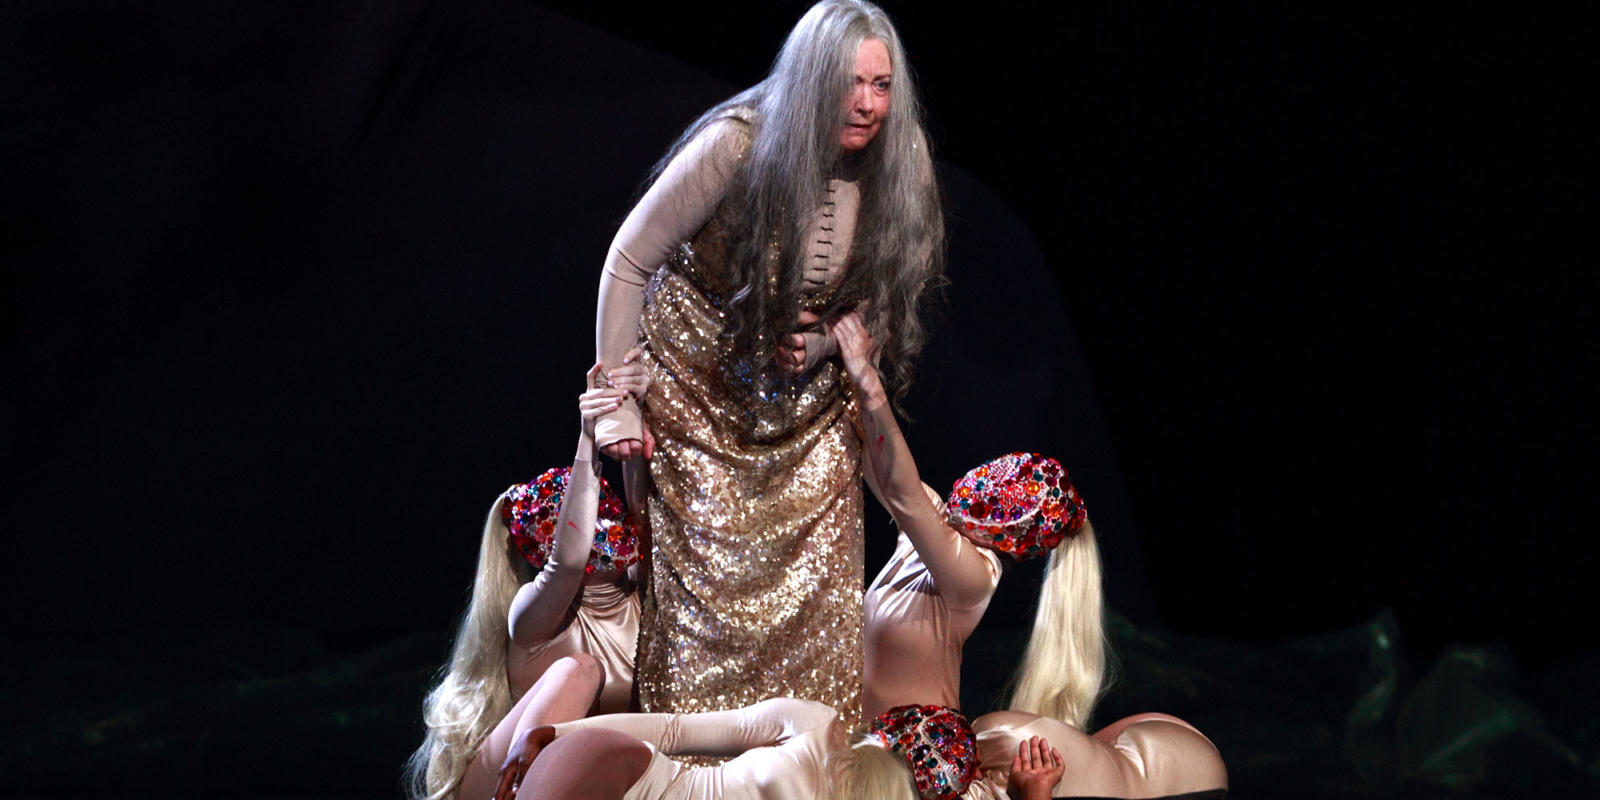 ENO Salome: Susan Bickley and dancers (c) Catherine Ashmore